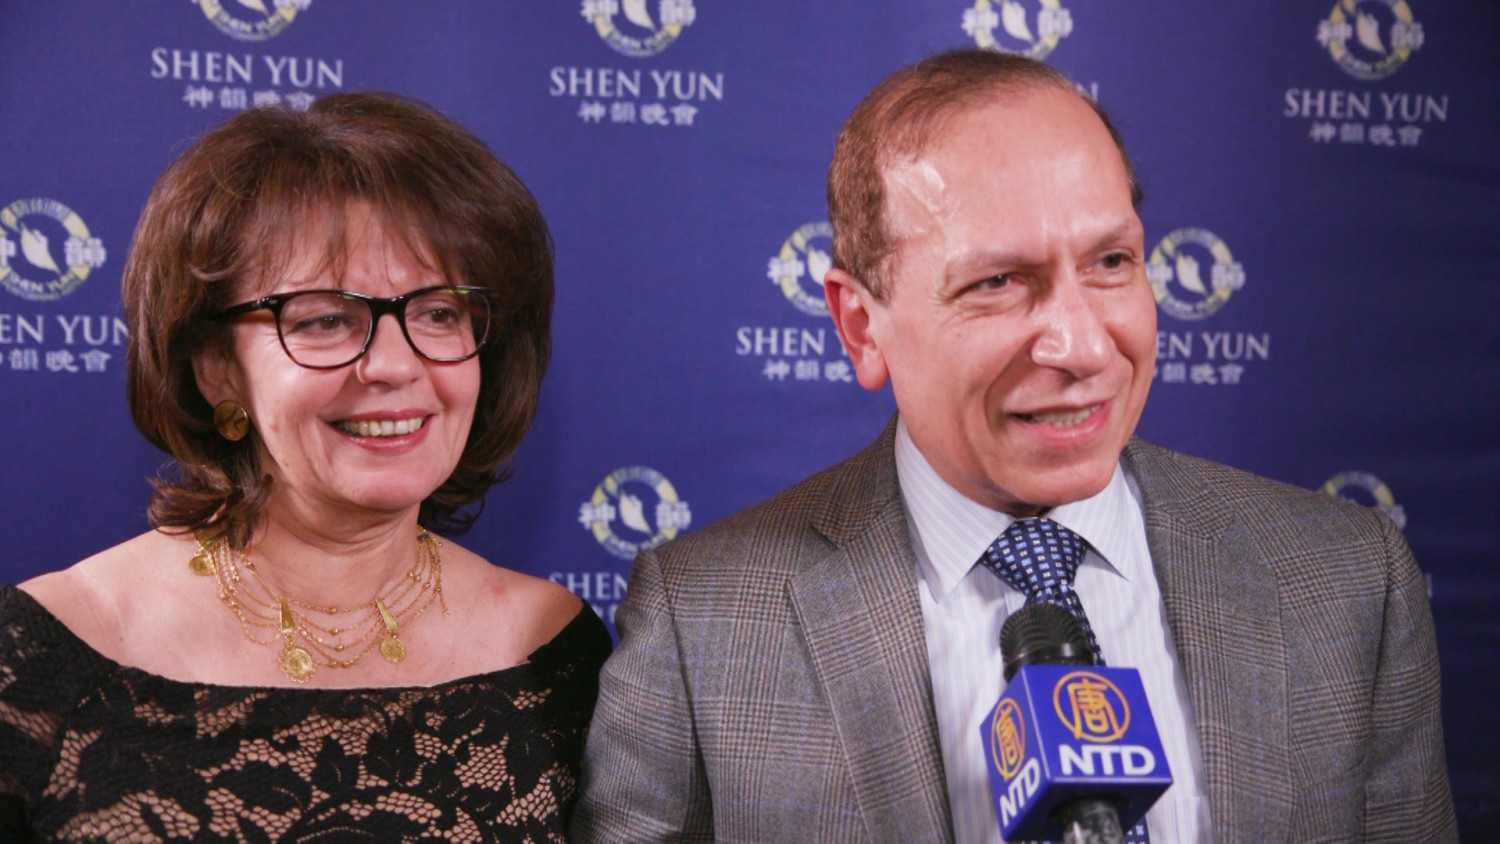 Chemical Company President and Theatergoer Amazed by the Shen Yun Dancers